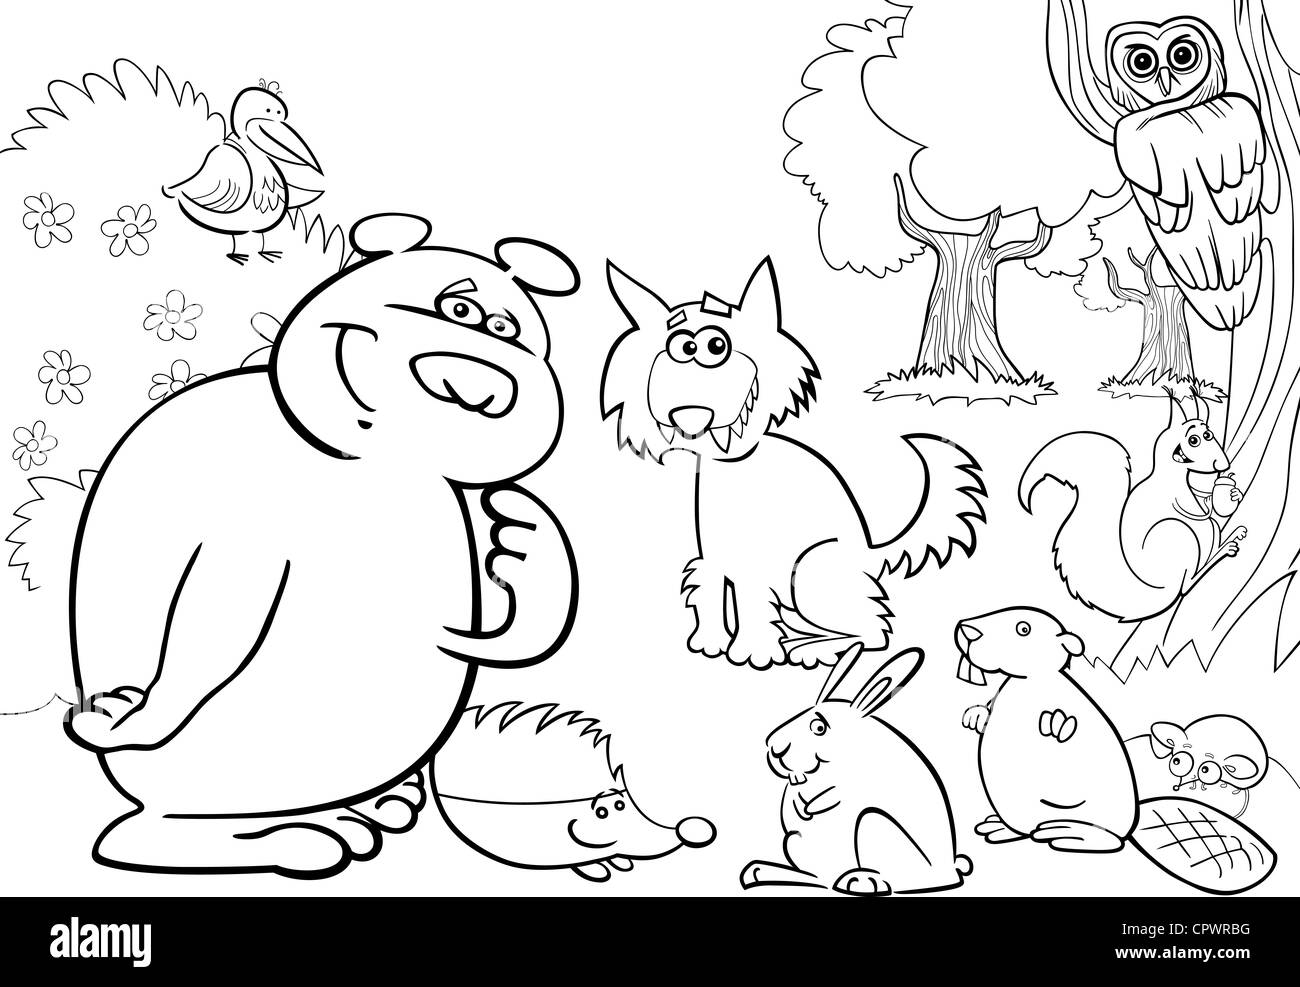 Animal kingdom coloring book gorilla - Stock Photo Cartoon Illustration Of Wild Forest Animals For Coloring Book